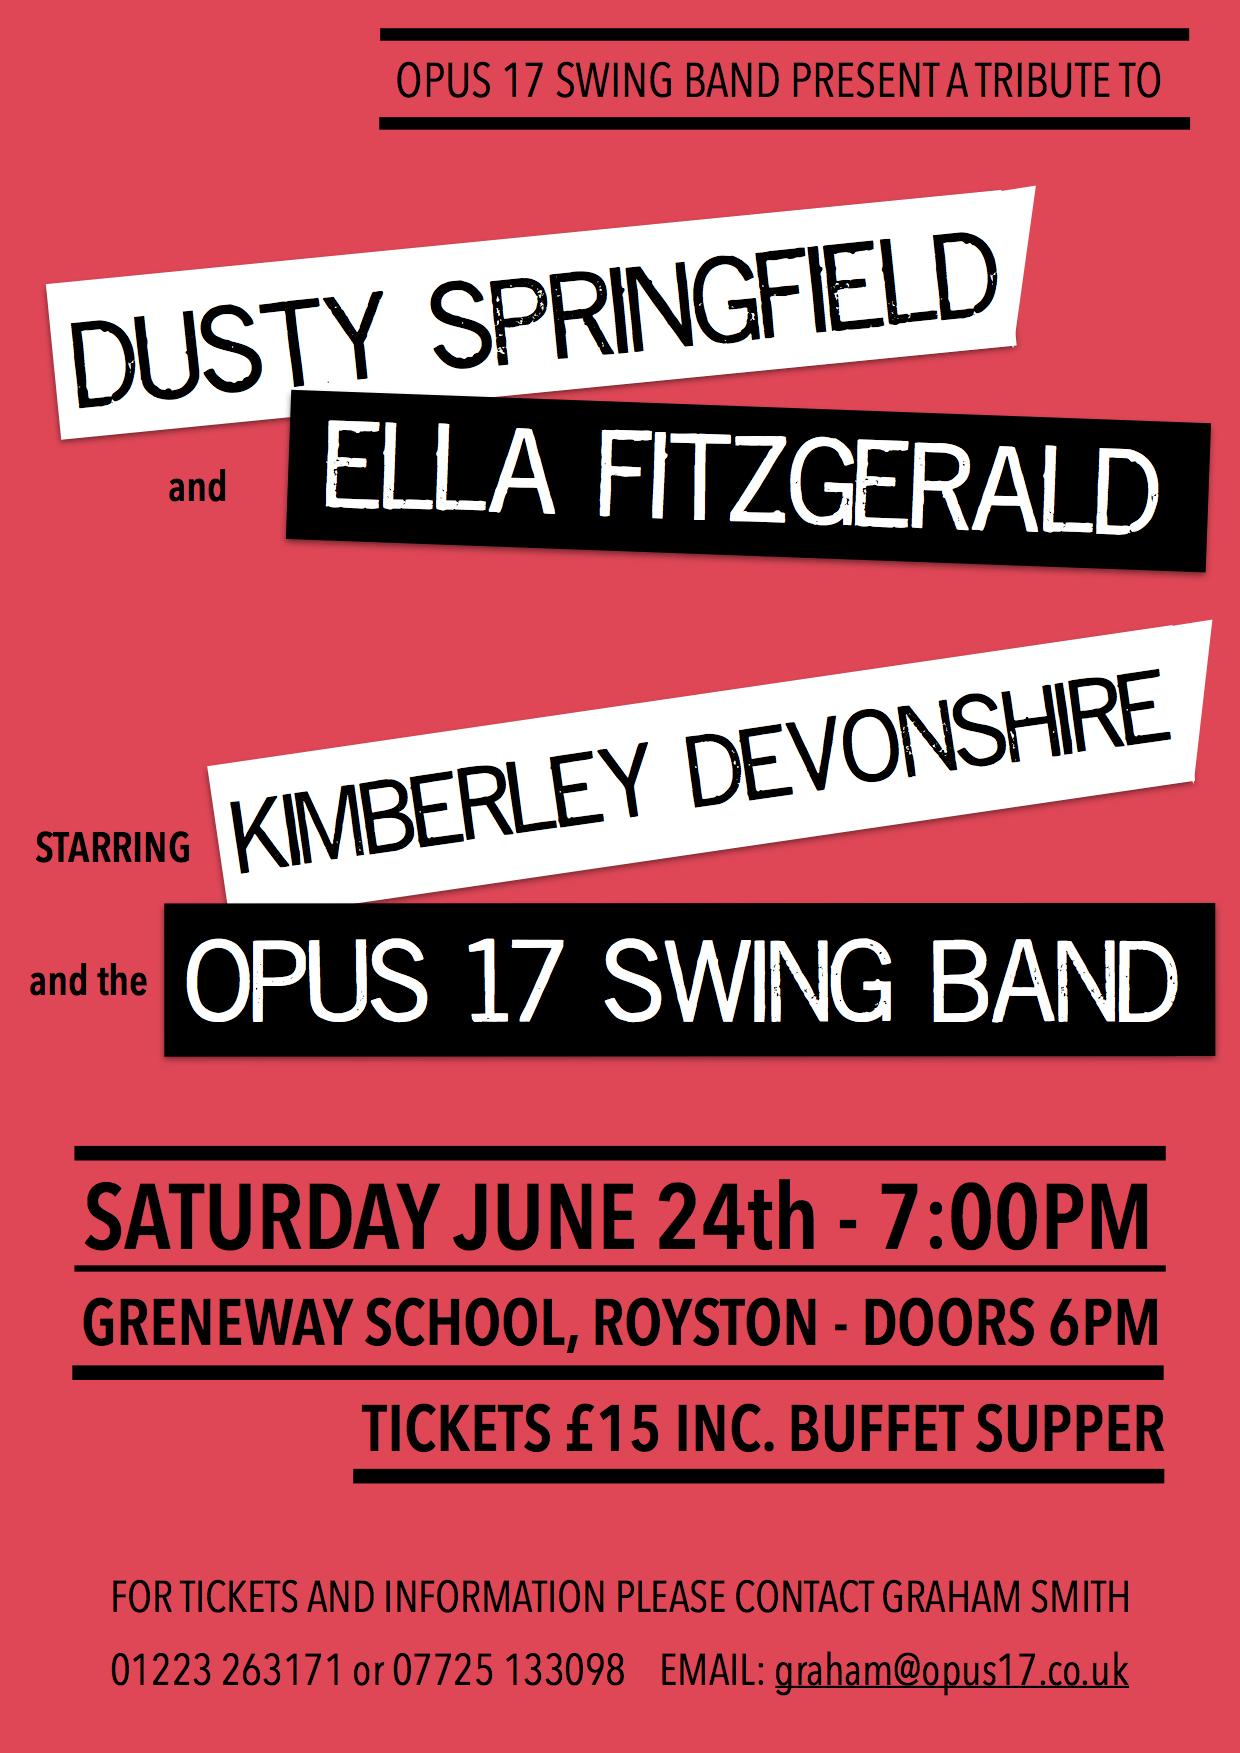 The Opus 17 Swing Band and Kimberley Devonshi